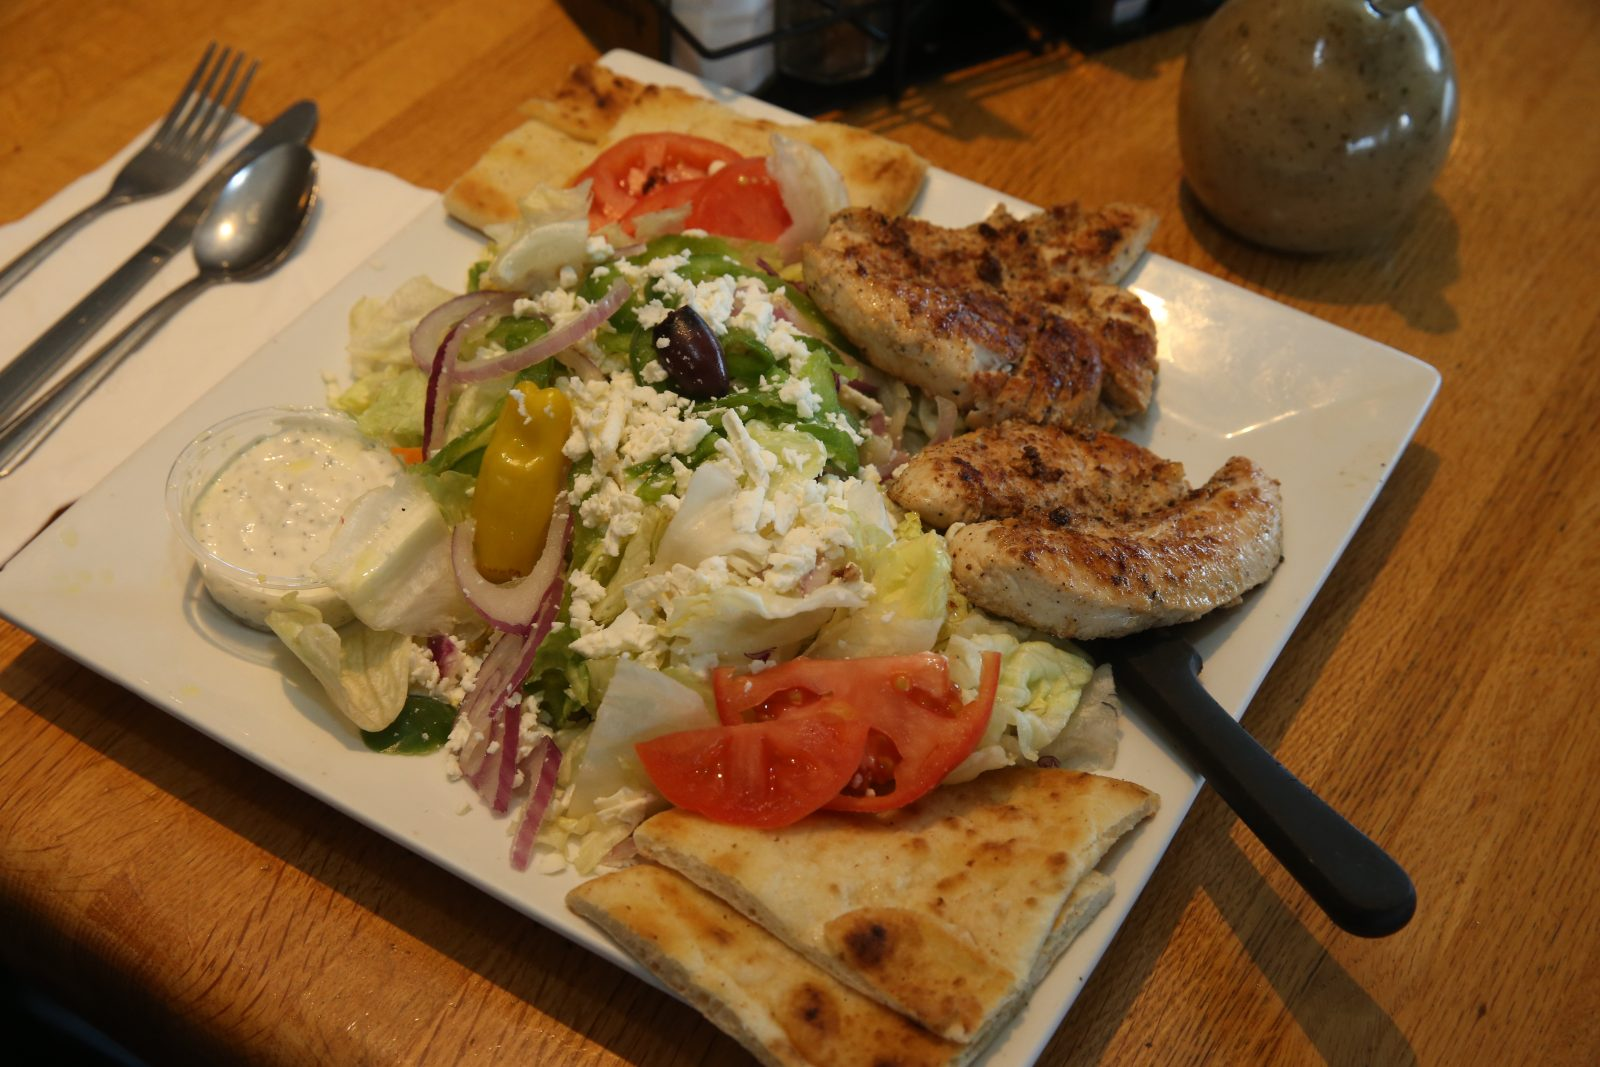 An open chicken souvlaki is a specialty at the Athens restaurant. (John Hickey/Buffalo News)